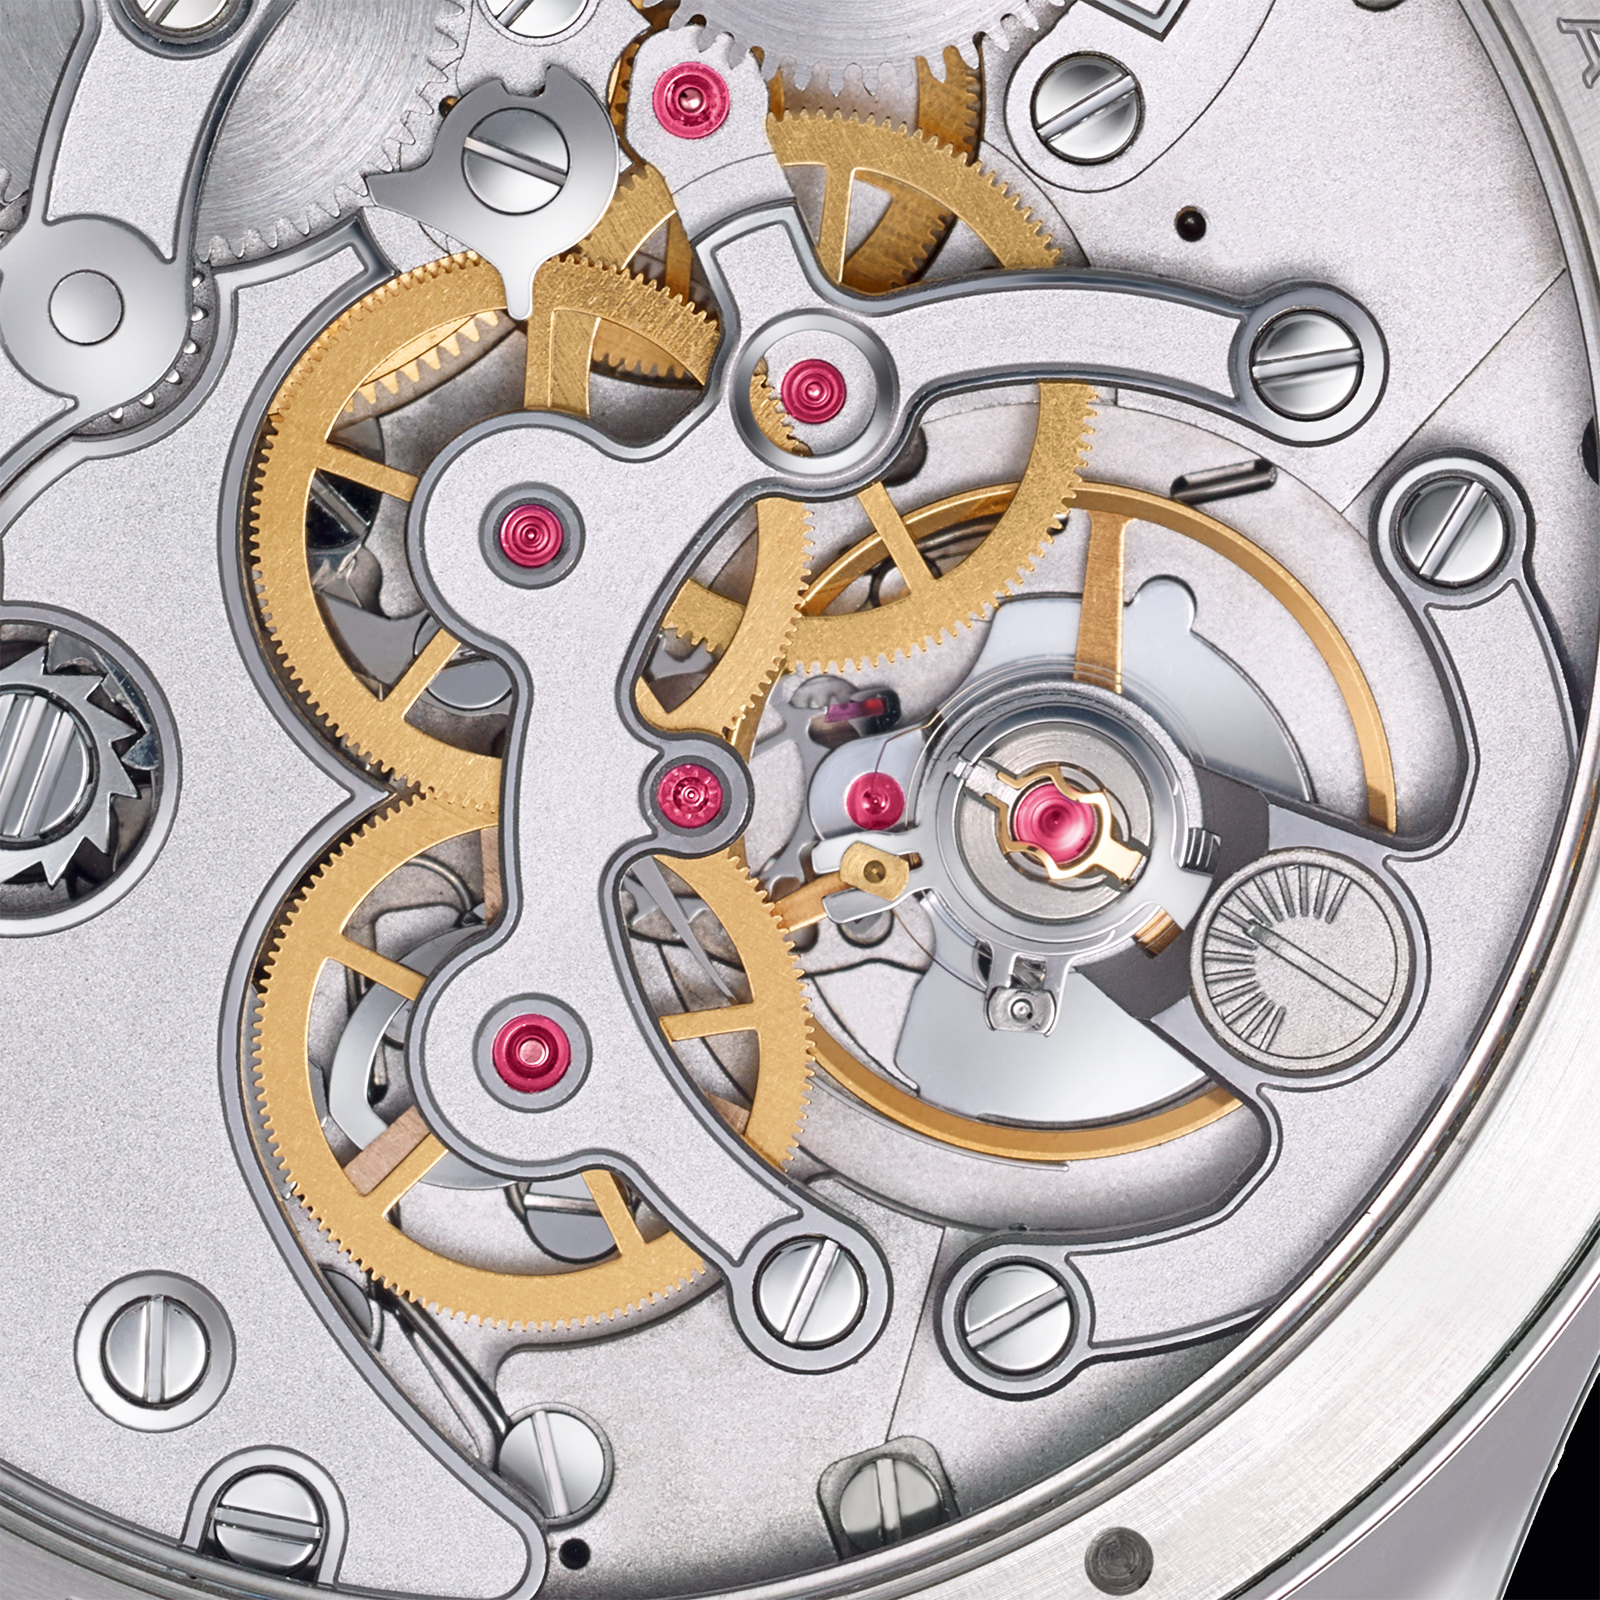 Leica L1 watch movement